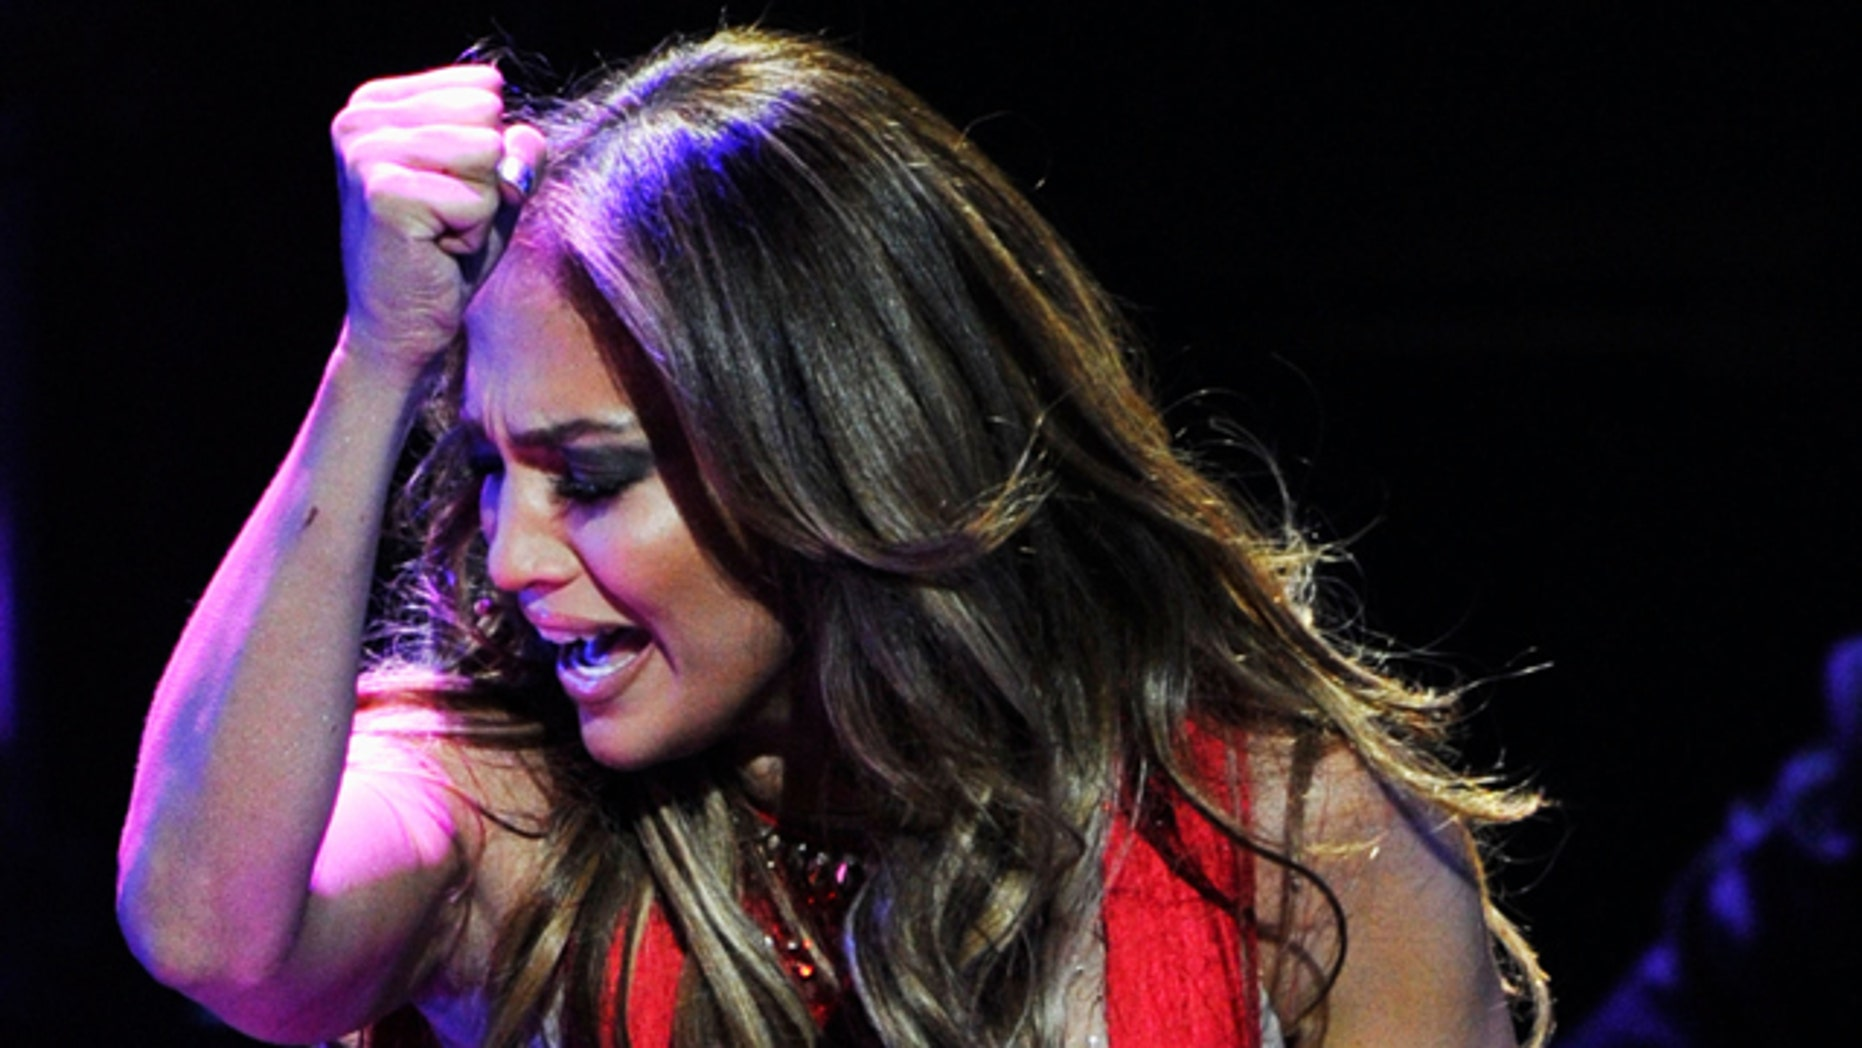 Sept. 24, 2011: Singer Jennifer Lopez performs onstage at the iHeartRadio Music Festival held at the MGM Grand Garden Arena in Las Vegas, Nev.